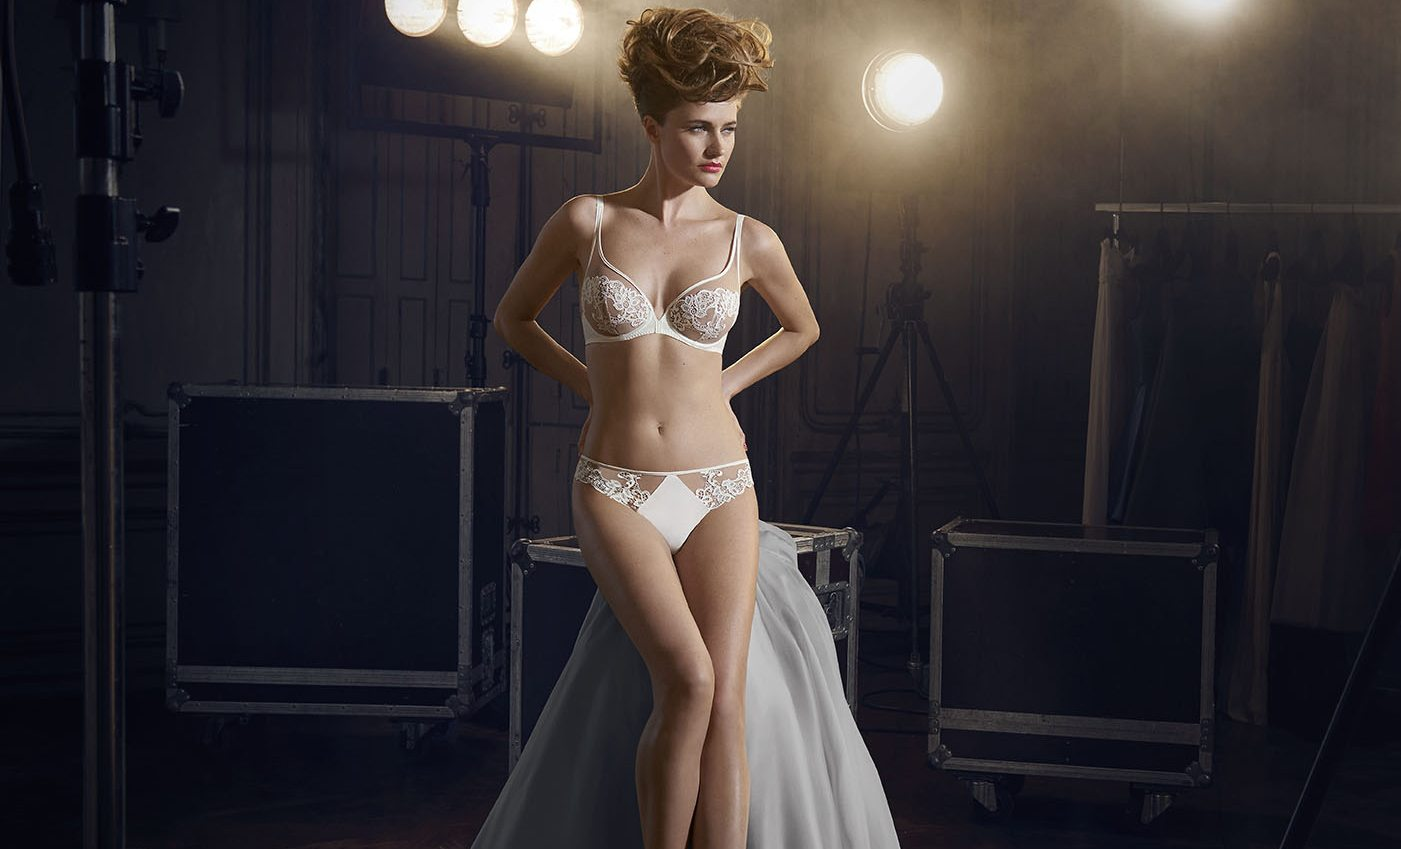 SIMONE PERELE SPRING 2016 COLLECTION